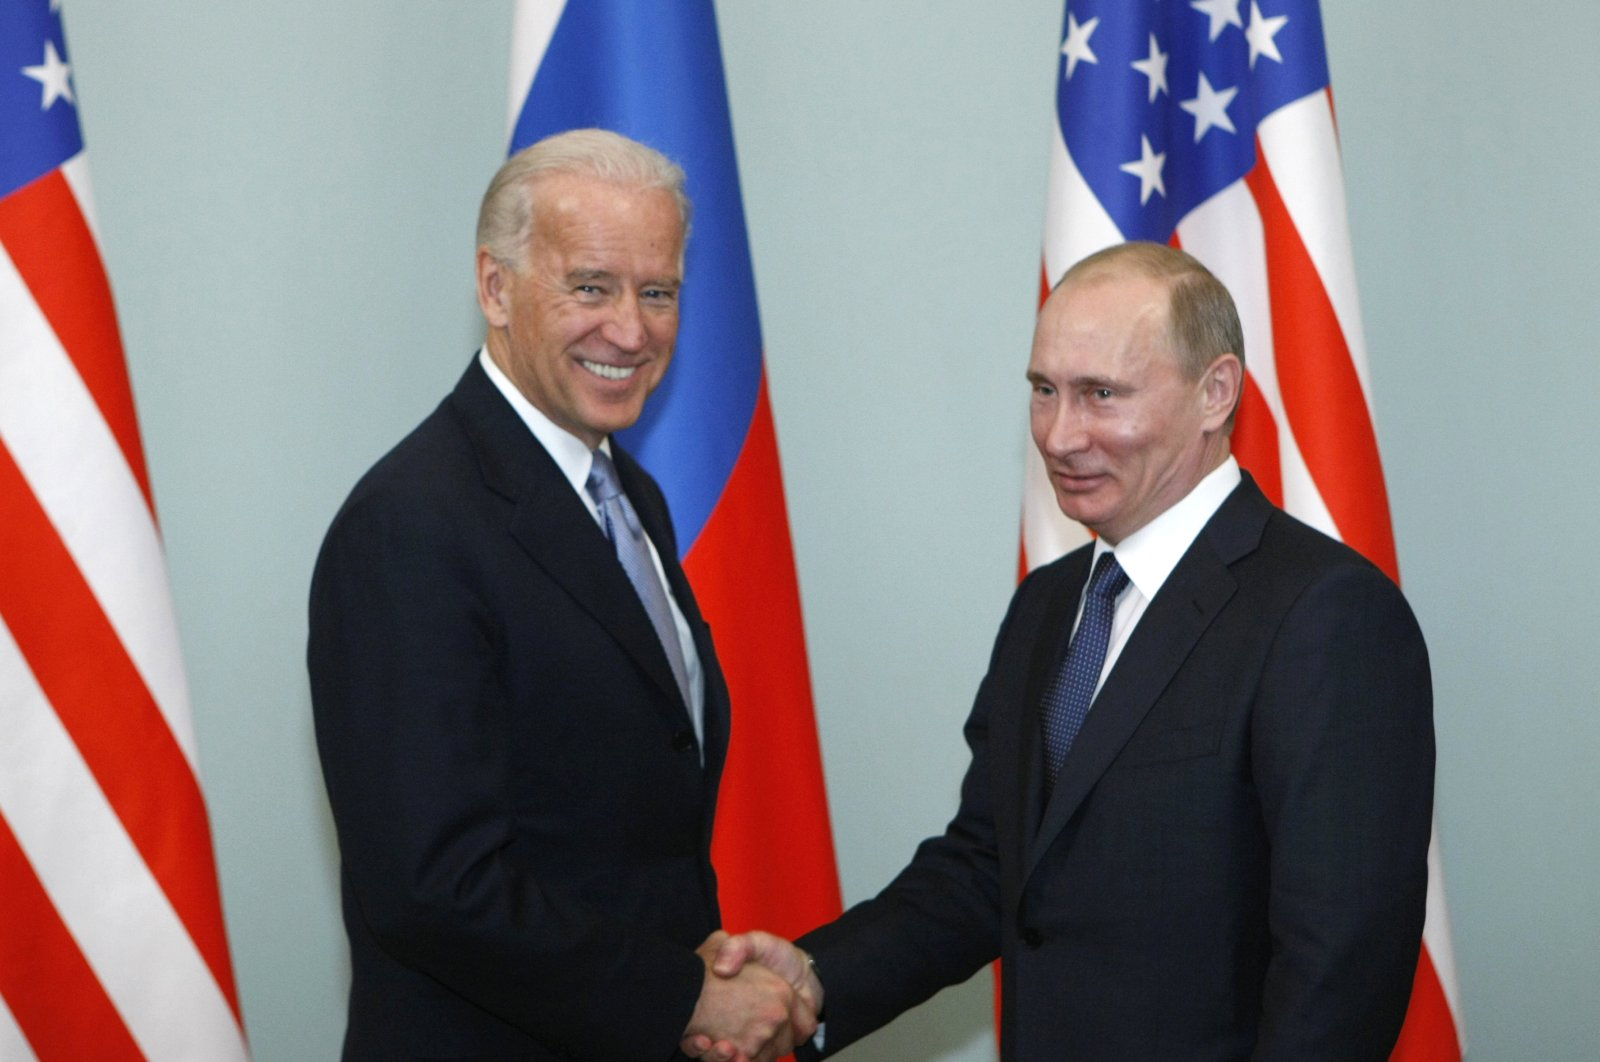 Former Vice President of the United States Joe Biden, left, shakes hands with Russian then- Prime Minister Vladimir Putin in Moscow, Russia, March 10, 2011. (AP Photo)